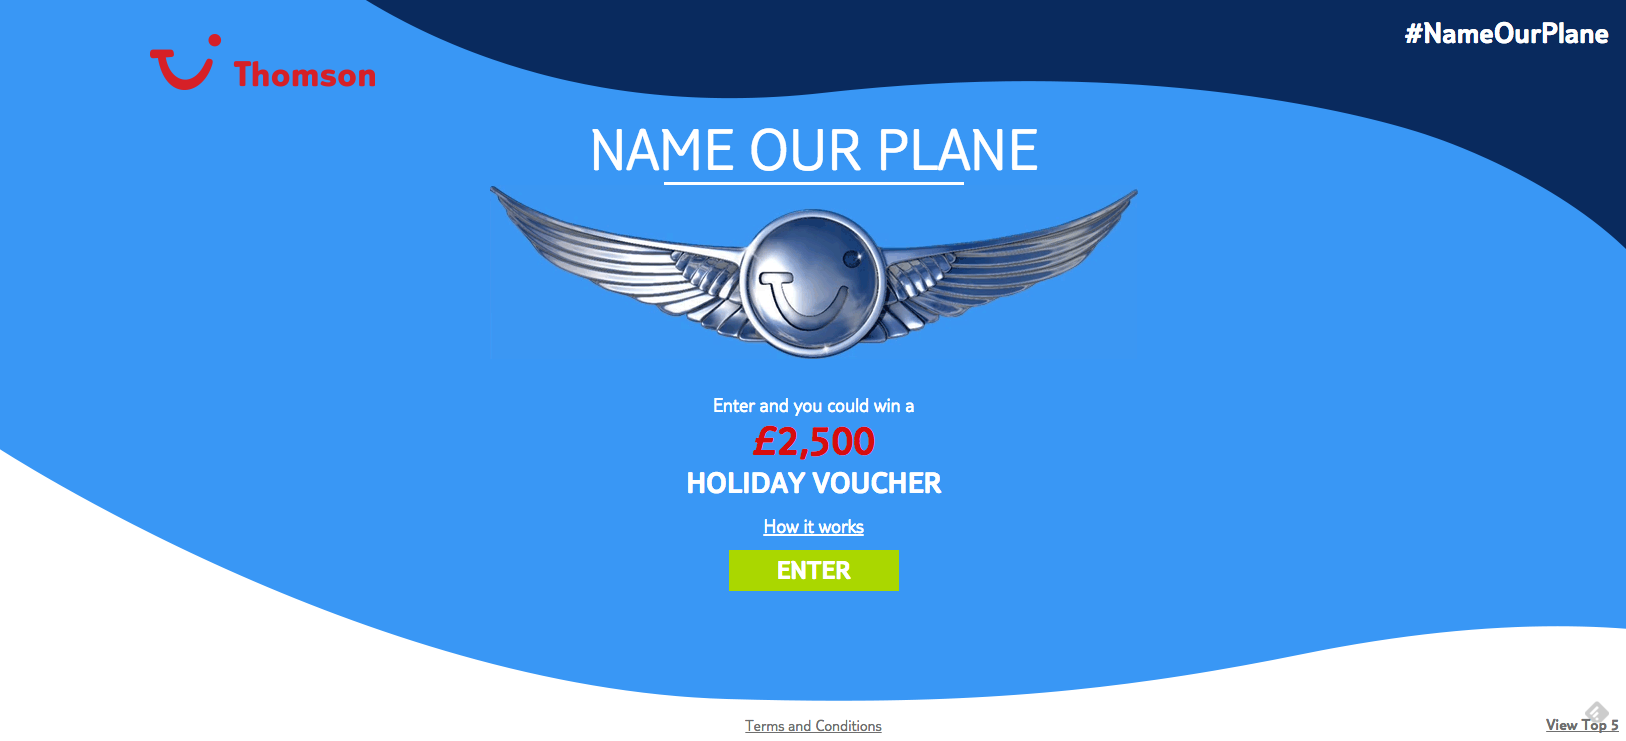 Three travel brands innovating in crowdsourced marketing | Econsultancy